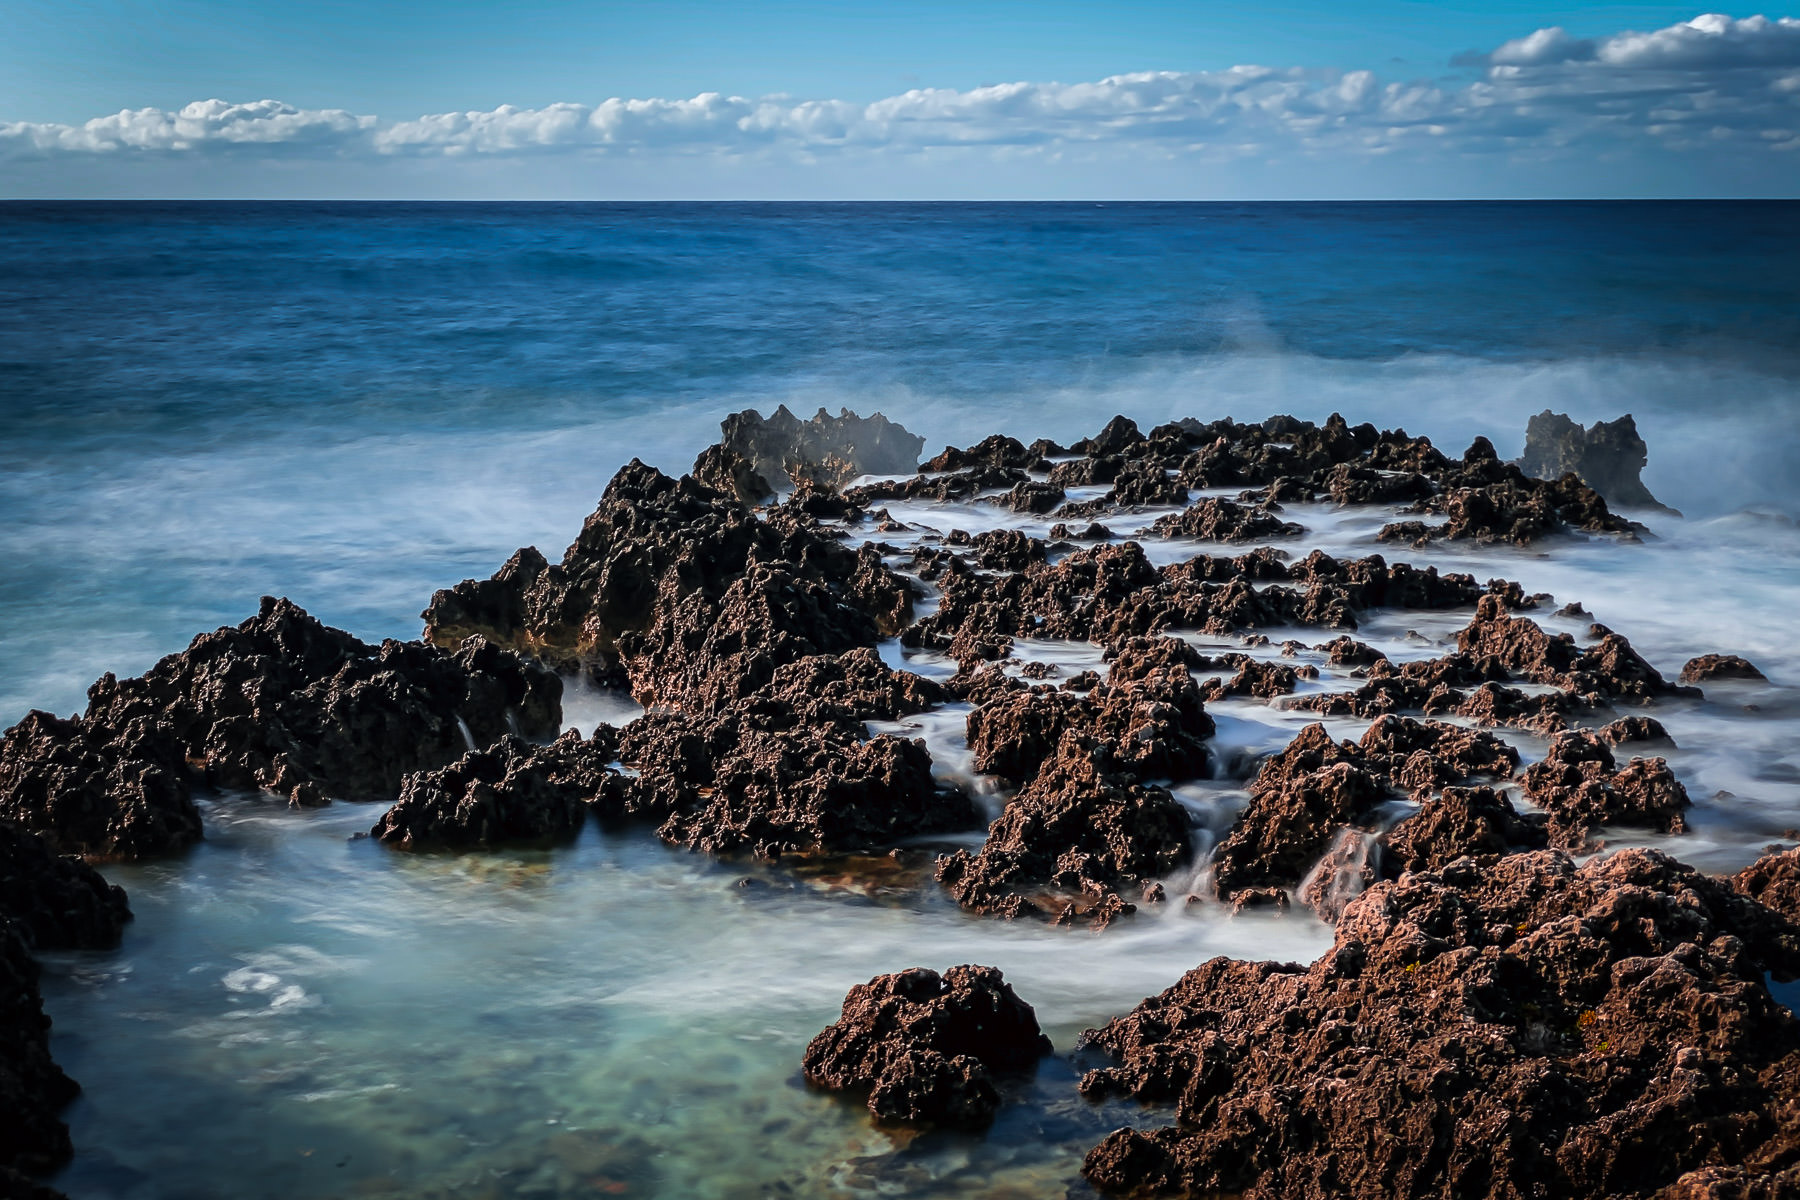 The rocky shore of a Grand Cayman beach.